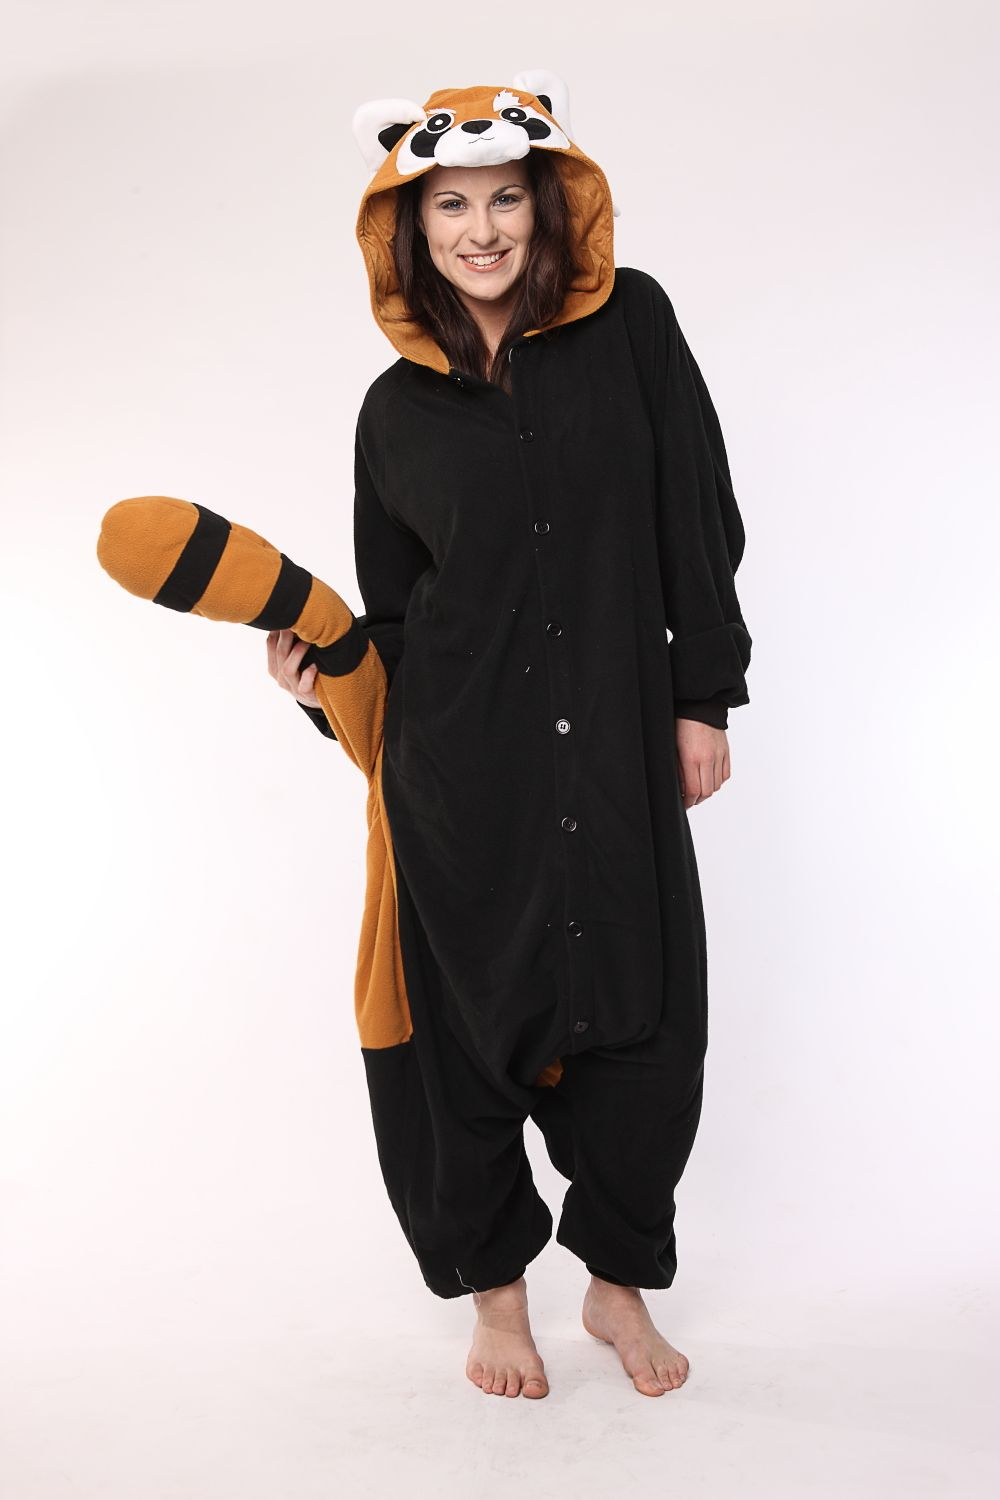 Image of: Kids Red Panda Adult Sazac Kigurumi Onesie Australia Pinterest Red Panda Adult Sazac Kigurumi Onesie Australia We Love Onesies